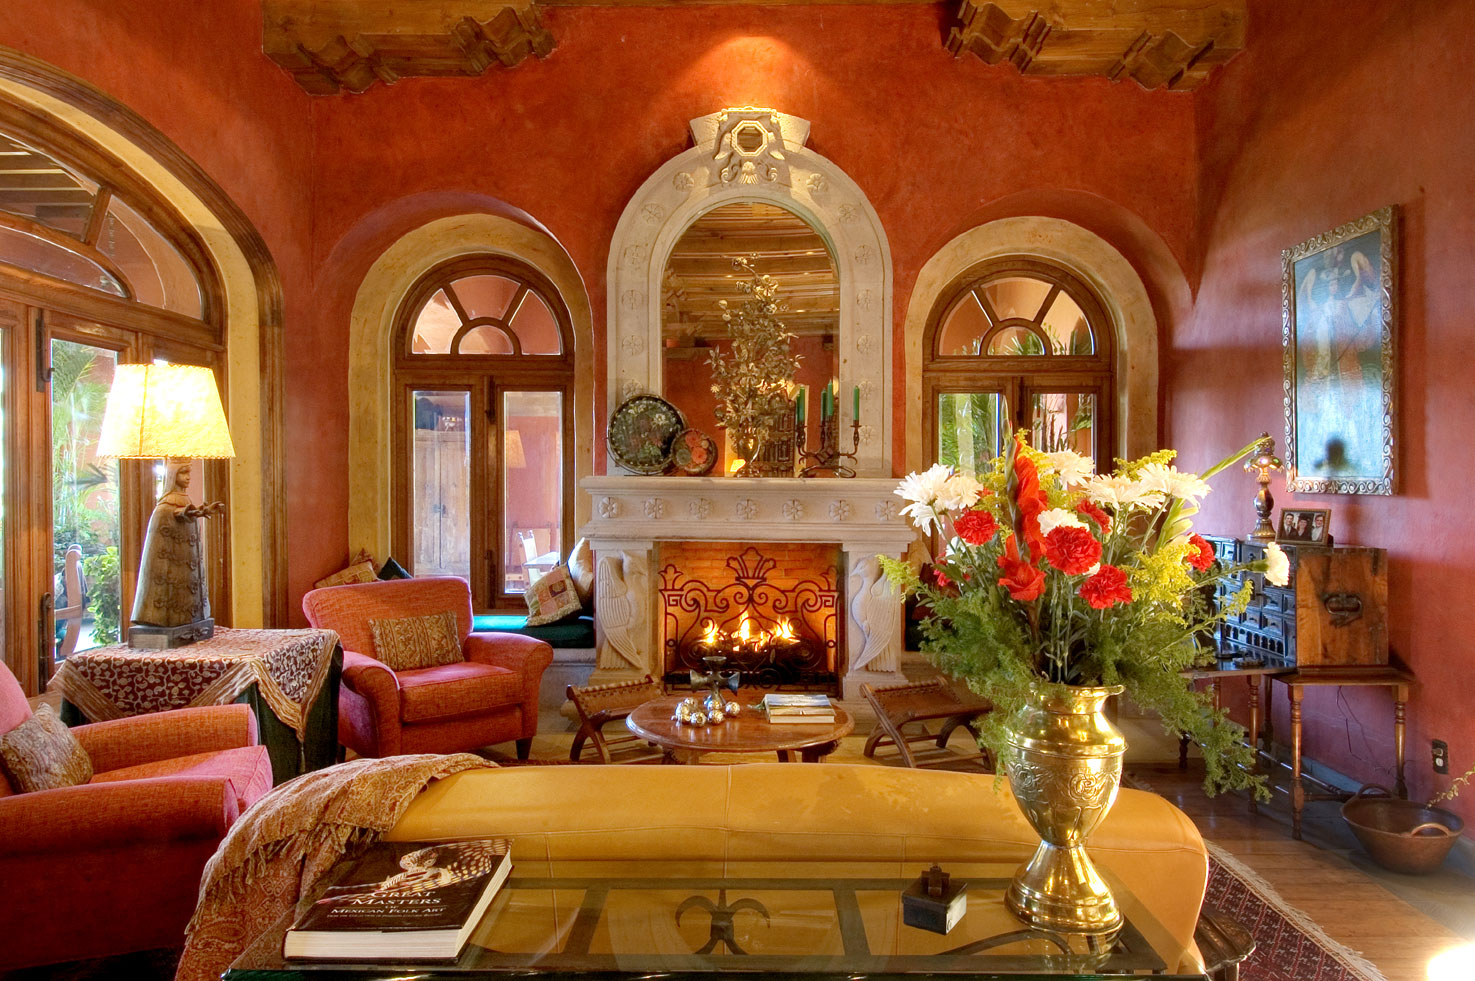 Resort town San Miguel de Allende saw an uptick in South American buyers. Mexico's strengthening economy and increasingly welcoming environment for multinational firms grew its appeal for foreigh buyers.<br/><br/>One of San Miguel de Allende's prestigious property offerings: Casa Heyne, a luxury hacienda-style villa.